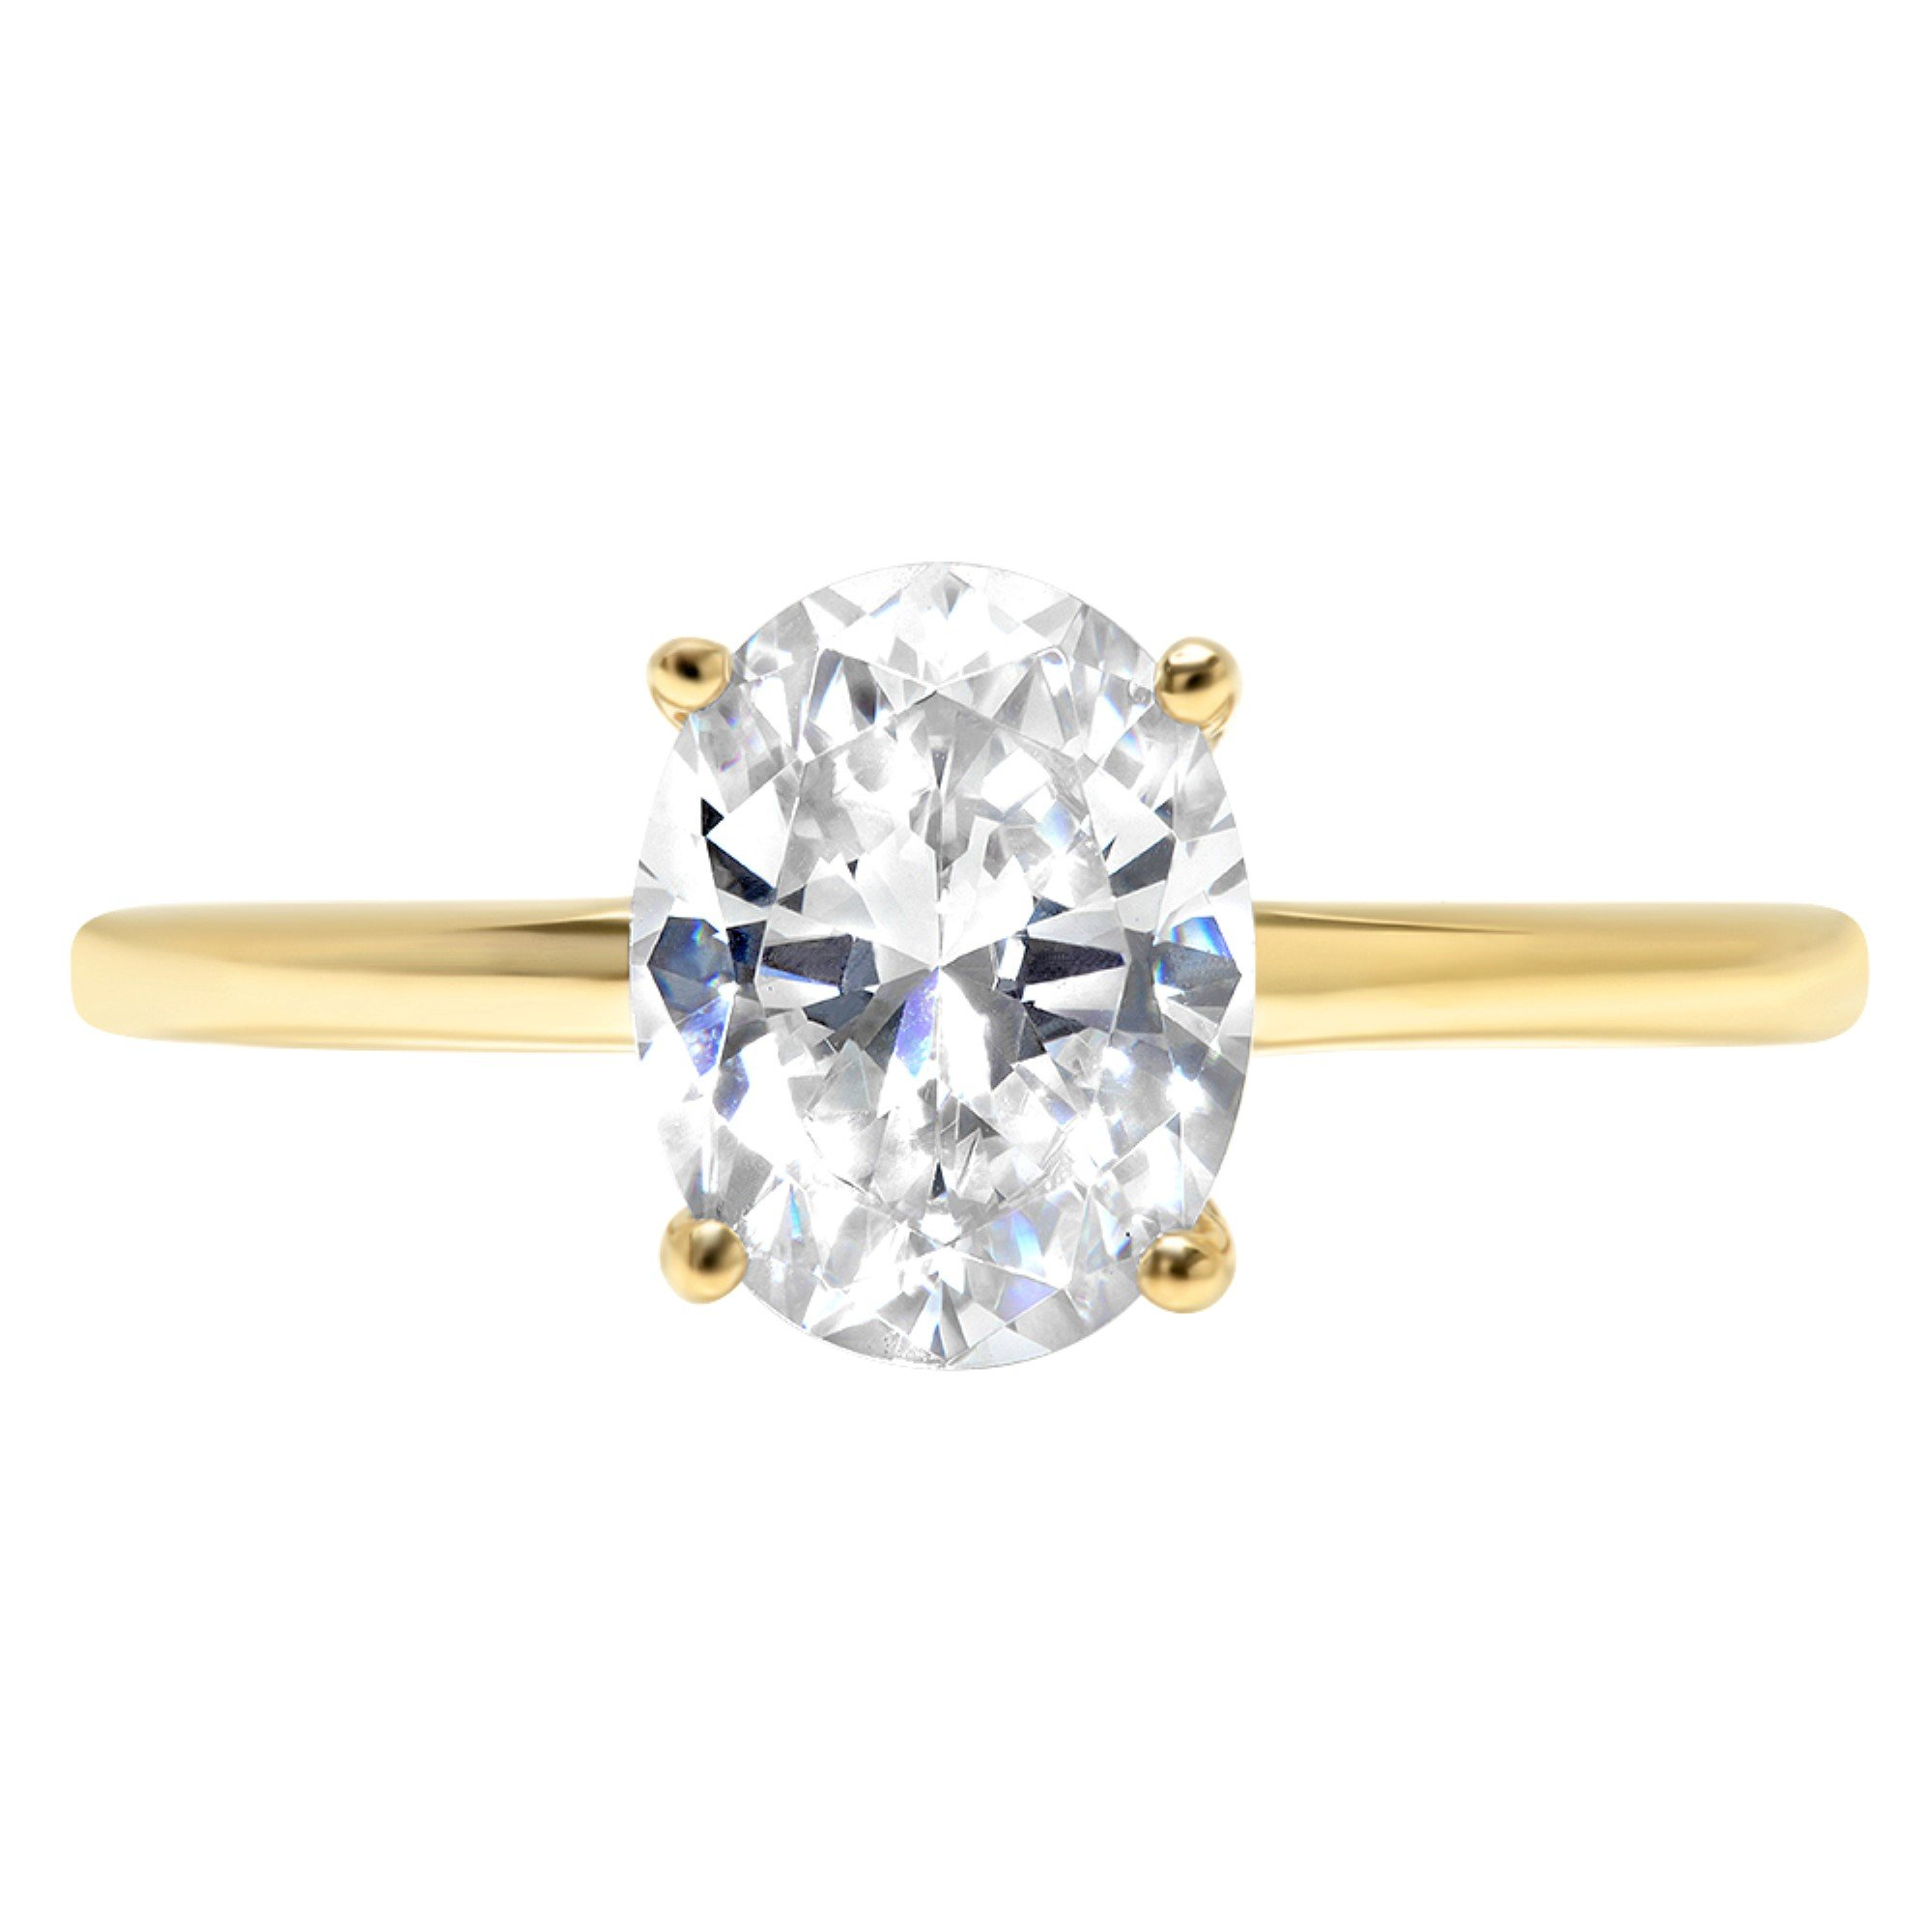 Oval Brilliant Cut Classic Solitaire Designer Wedding Bridal Statement Anniversary Engagement Promise Ring Solid 14k Yellow Gold, 2.2ct, 10.25 by Clara Pucci